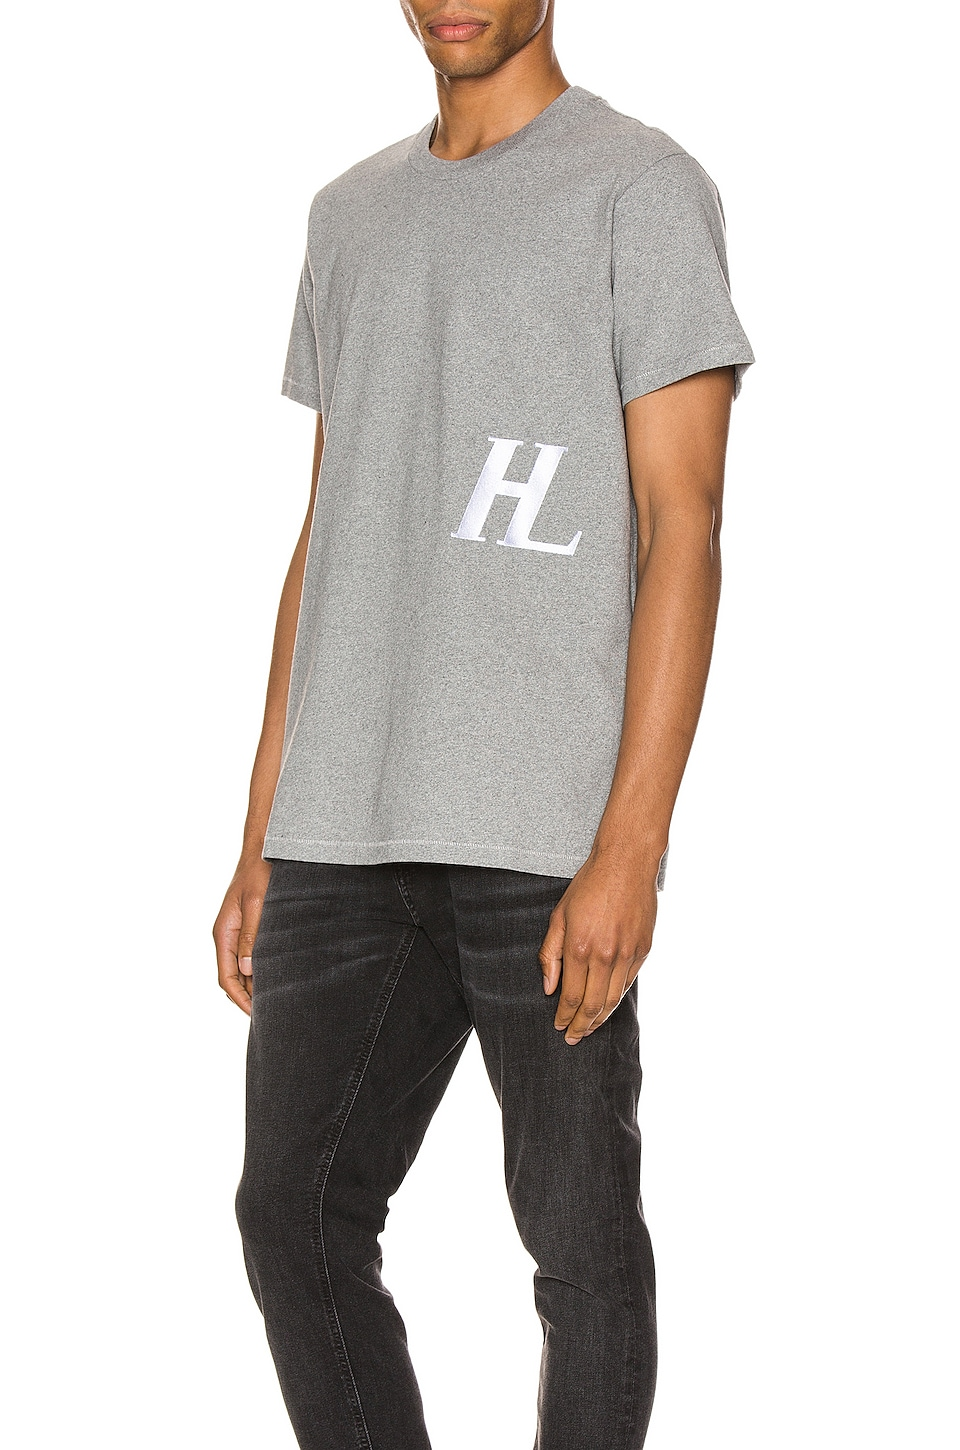 Helmut Lang HL Logo Tee in Precision Heather